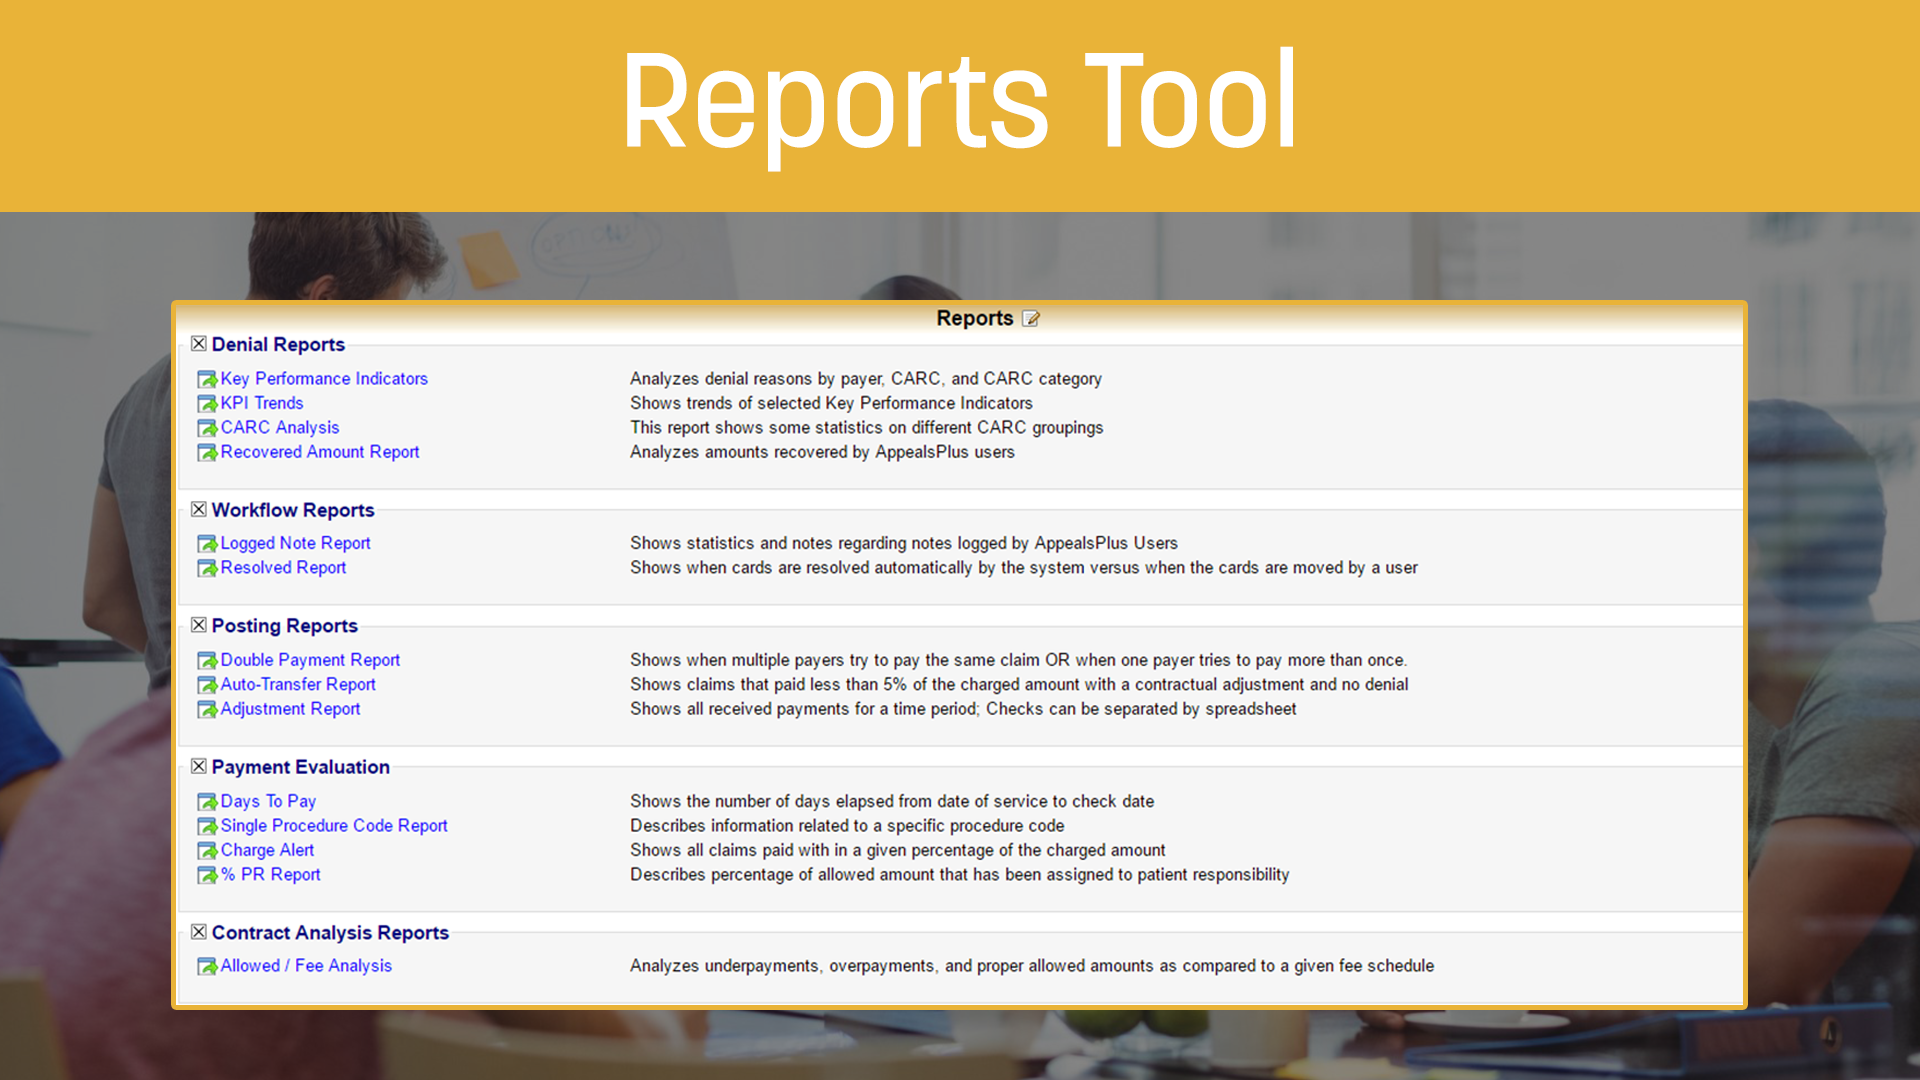 Reports Tool